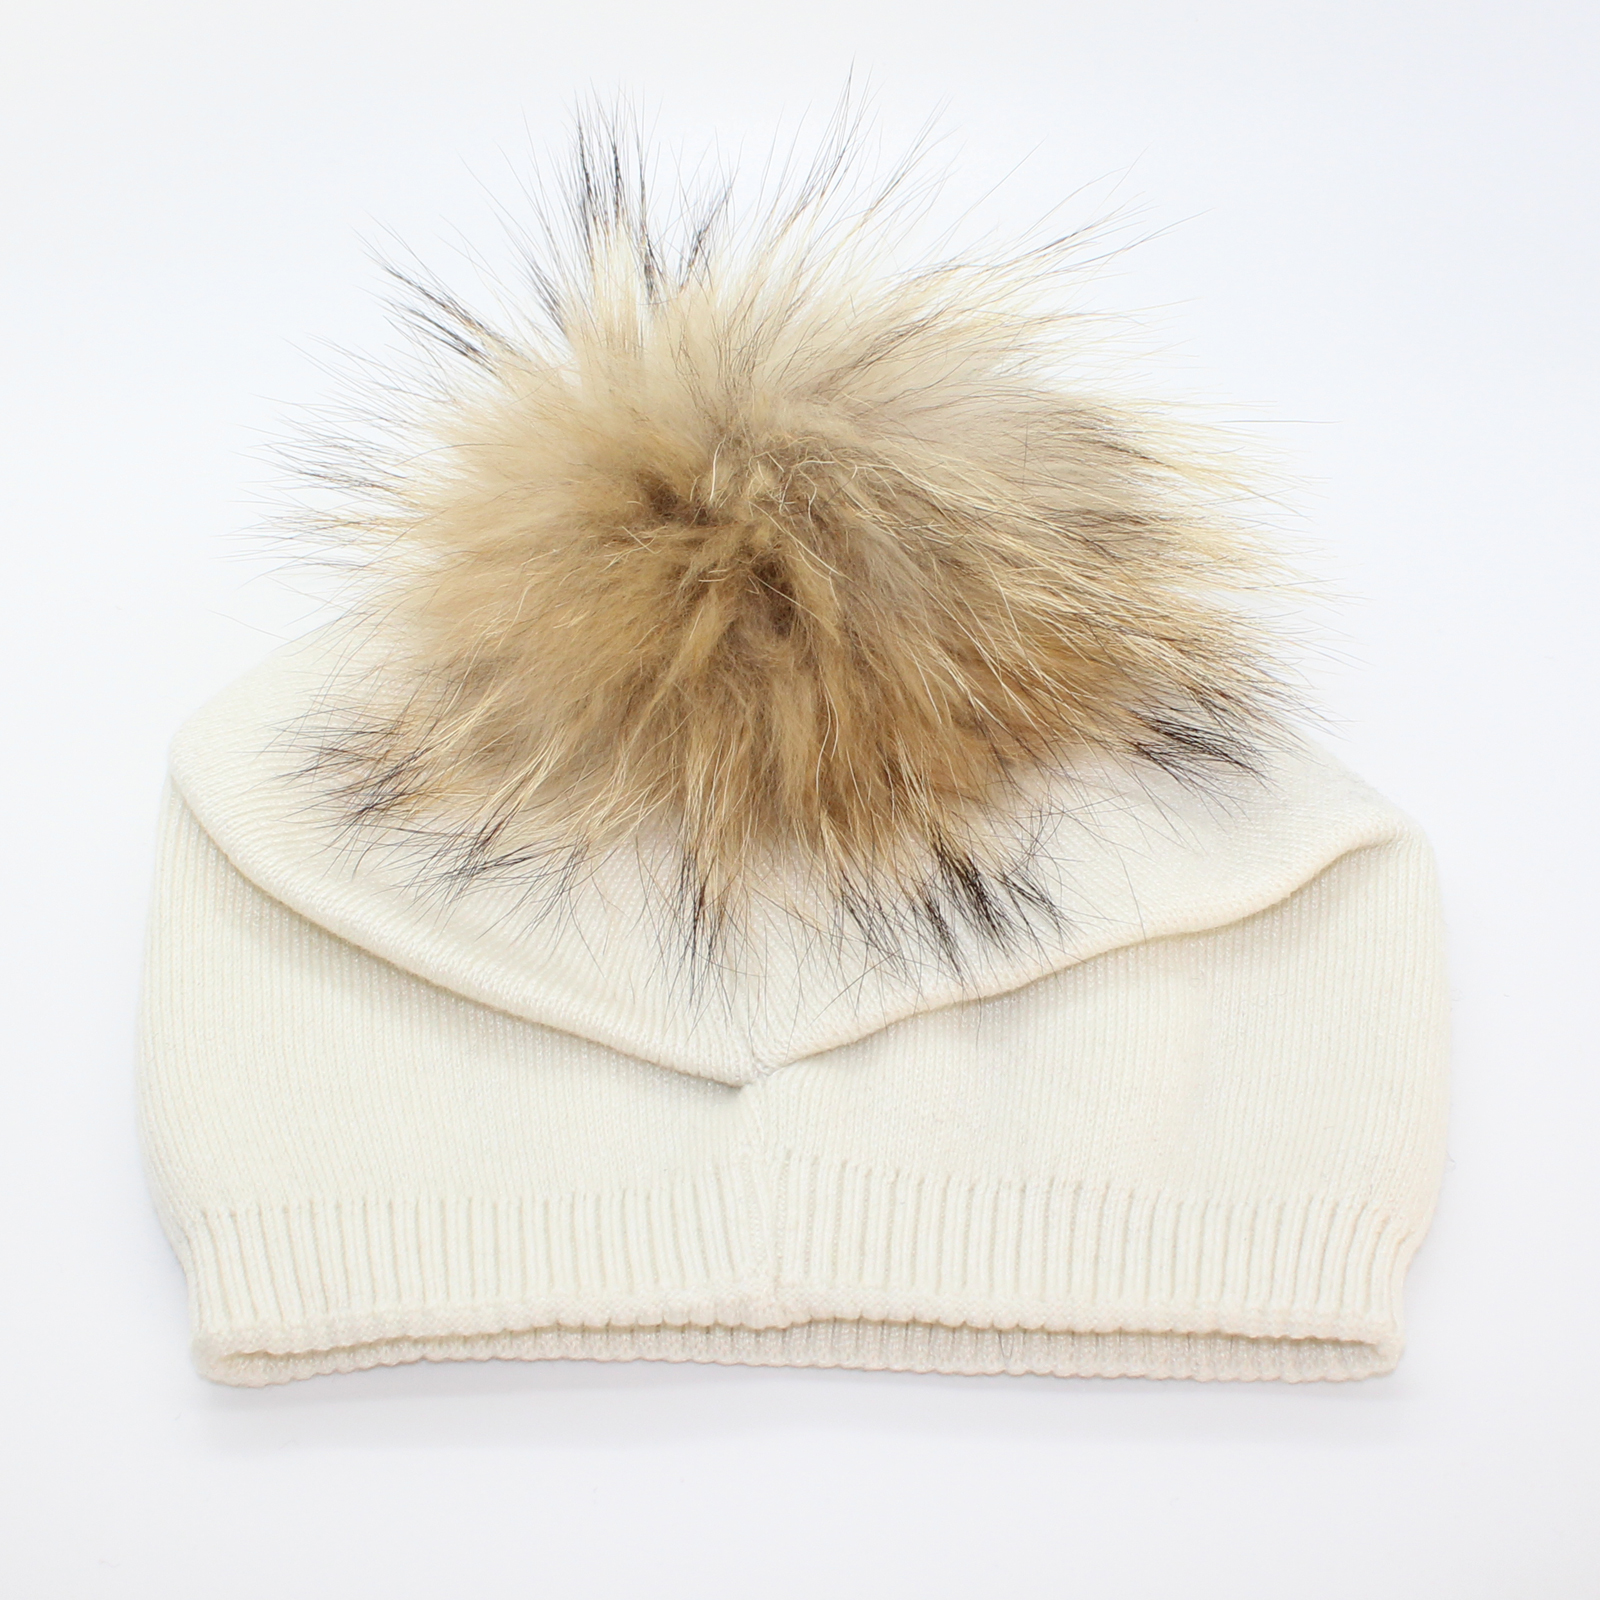 Pungles - Online Store - Knitted Cashmere Removable Fur Pompom ... 23c8ce52a68